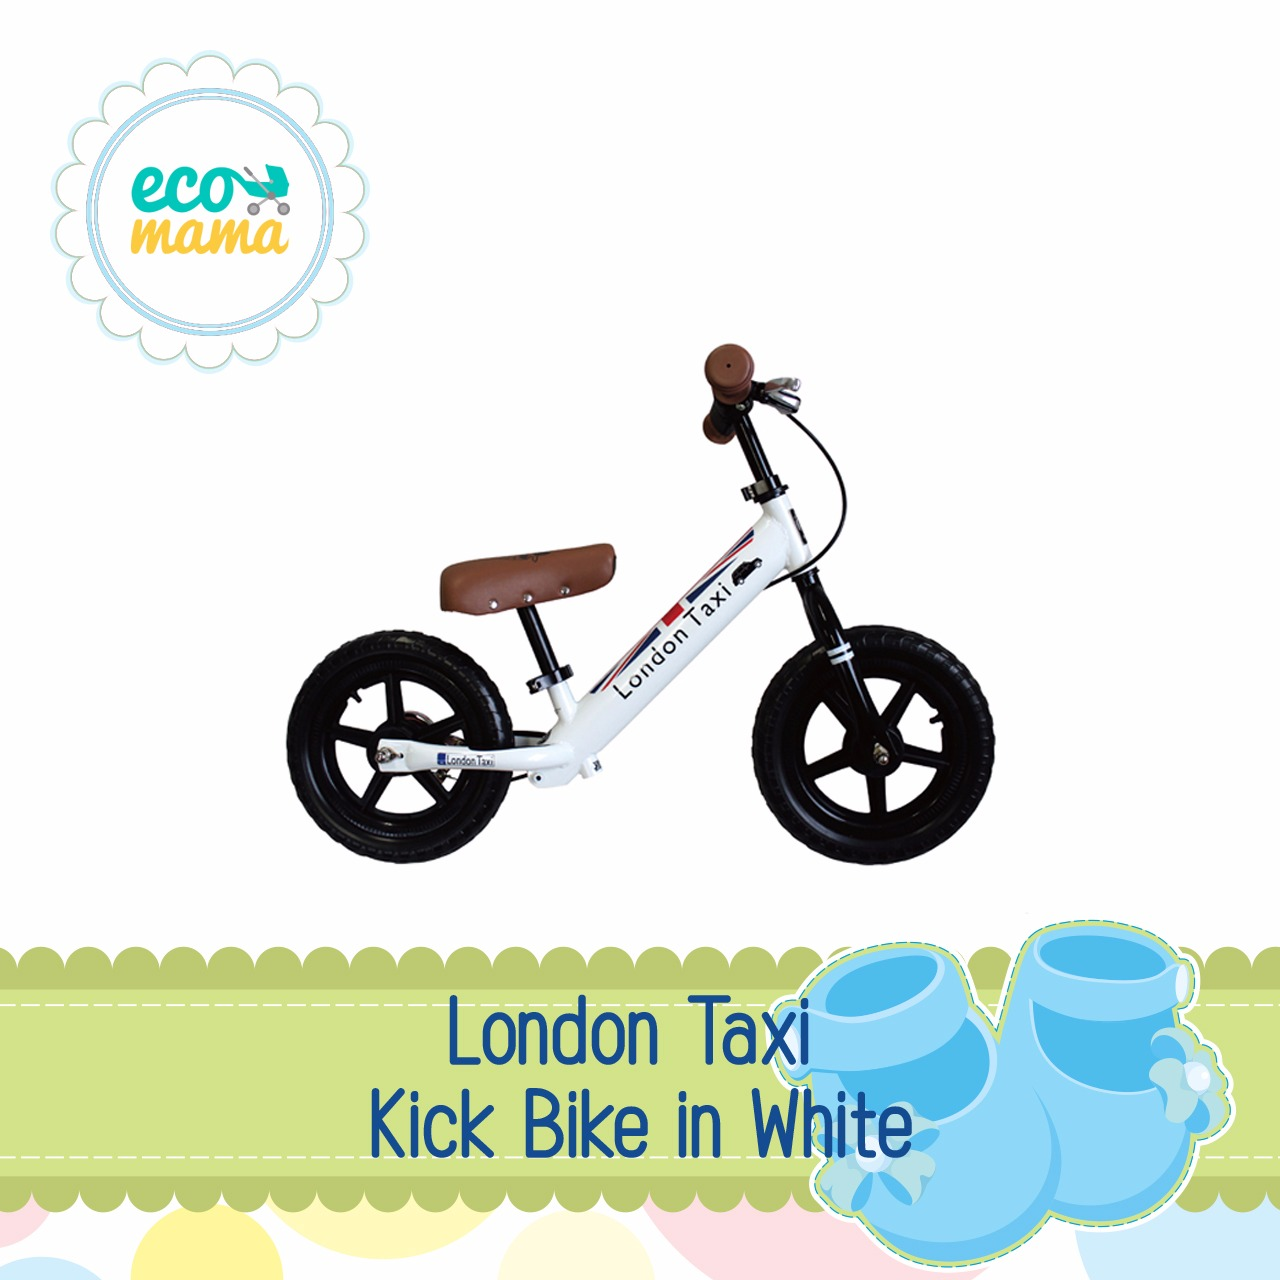 London Taxi Kick Bike in White